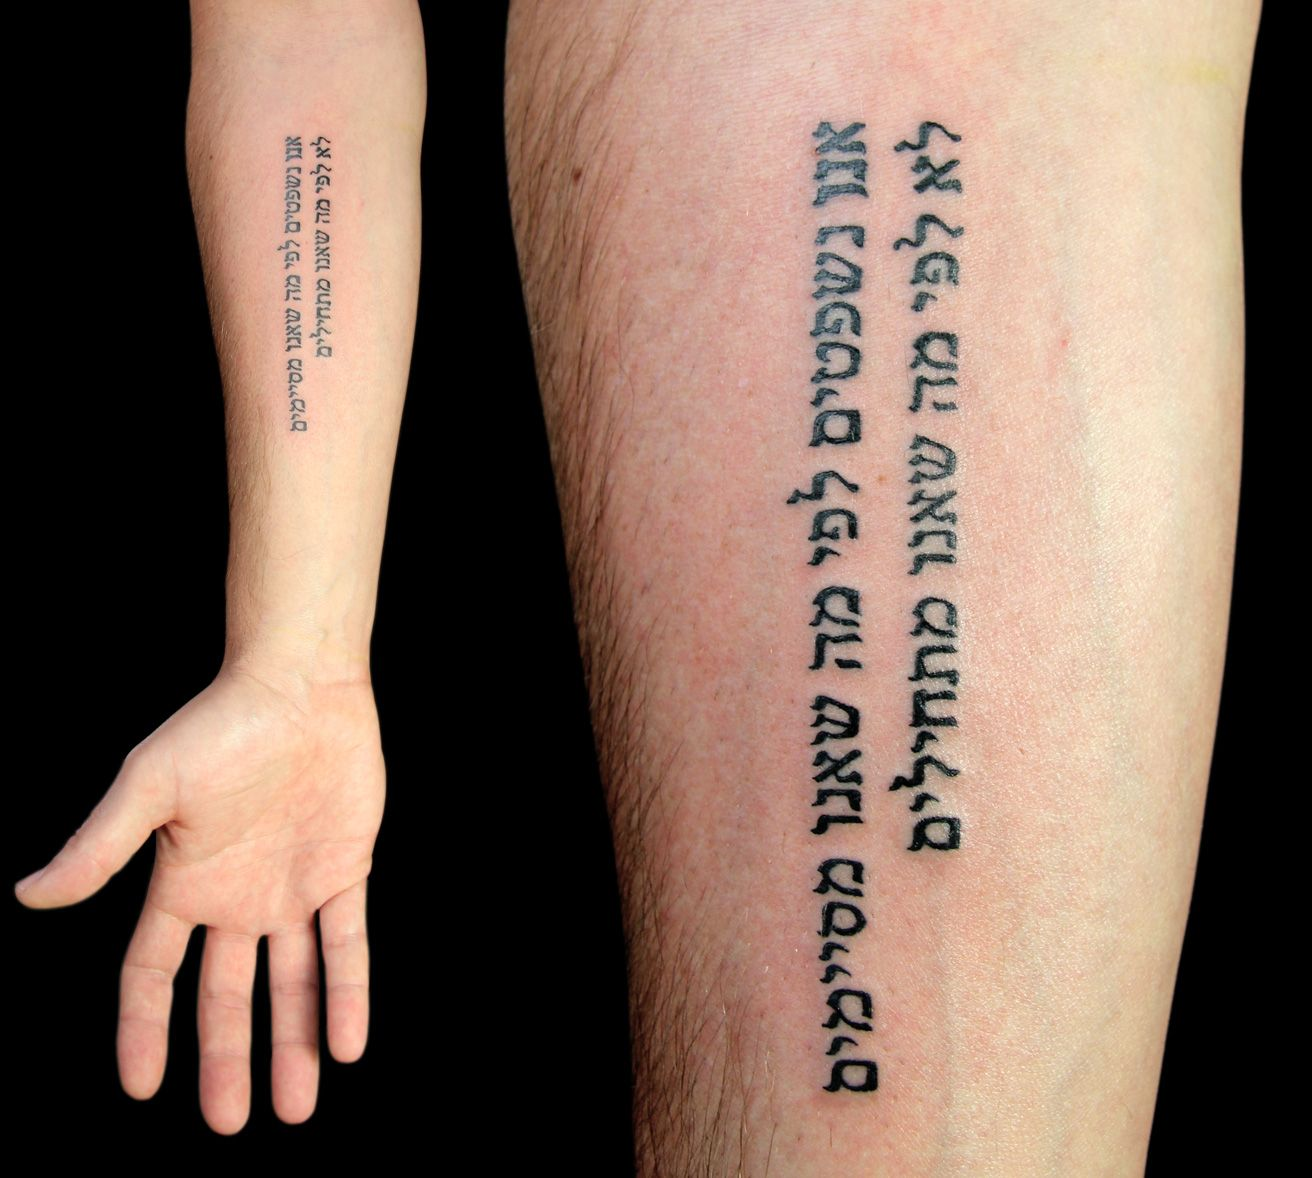 Tattoo Quotes In Hebrew: Find Your Perfect Hebrew Tattoo Design Or Idea